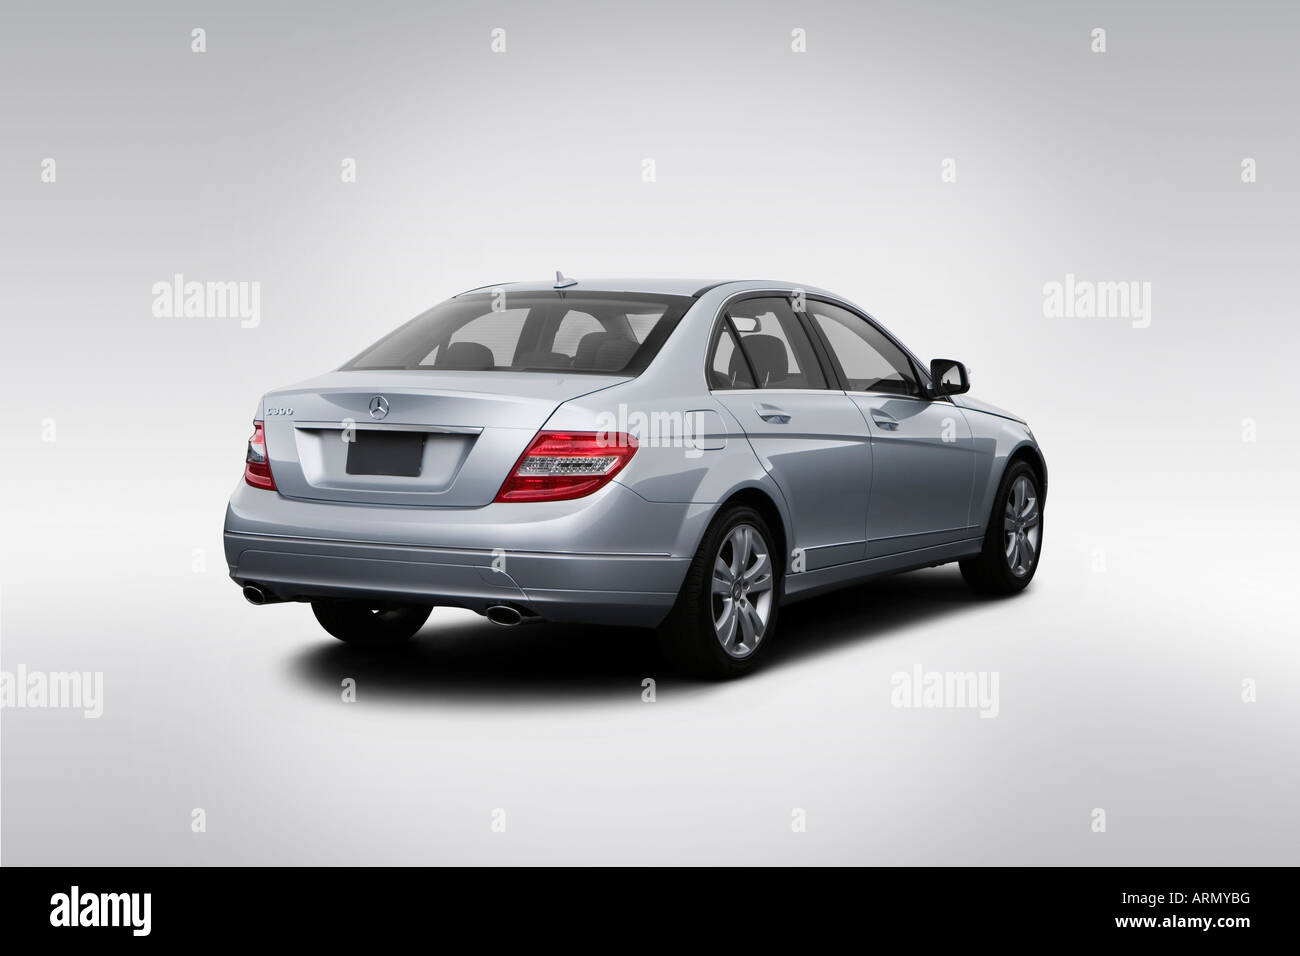 hight resolution of 2008 mercedes benz c class c300 in silver rear angle view